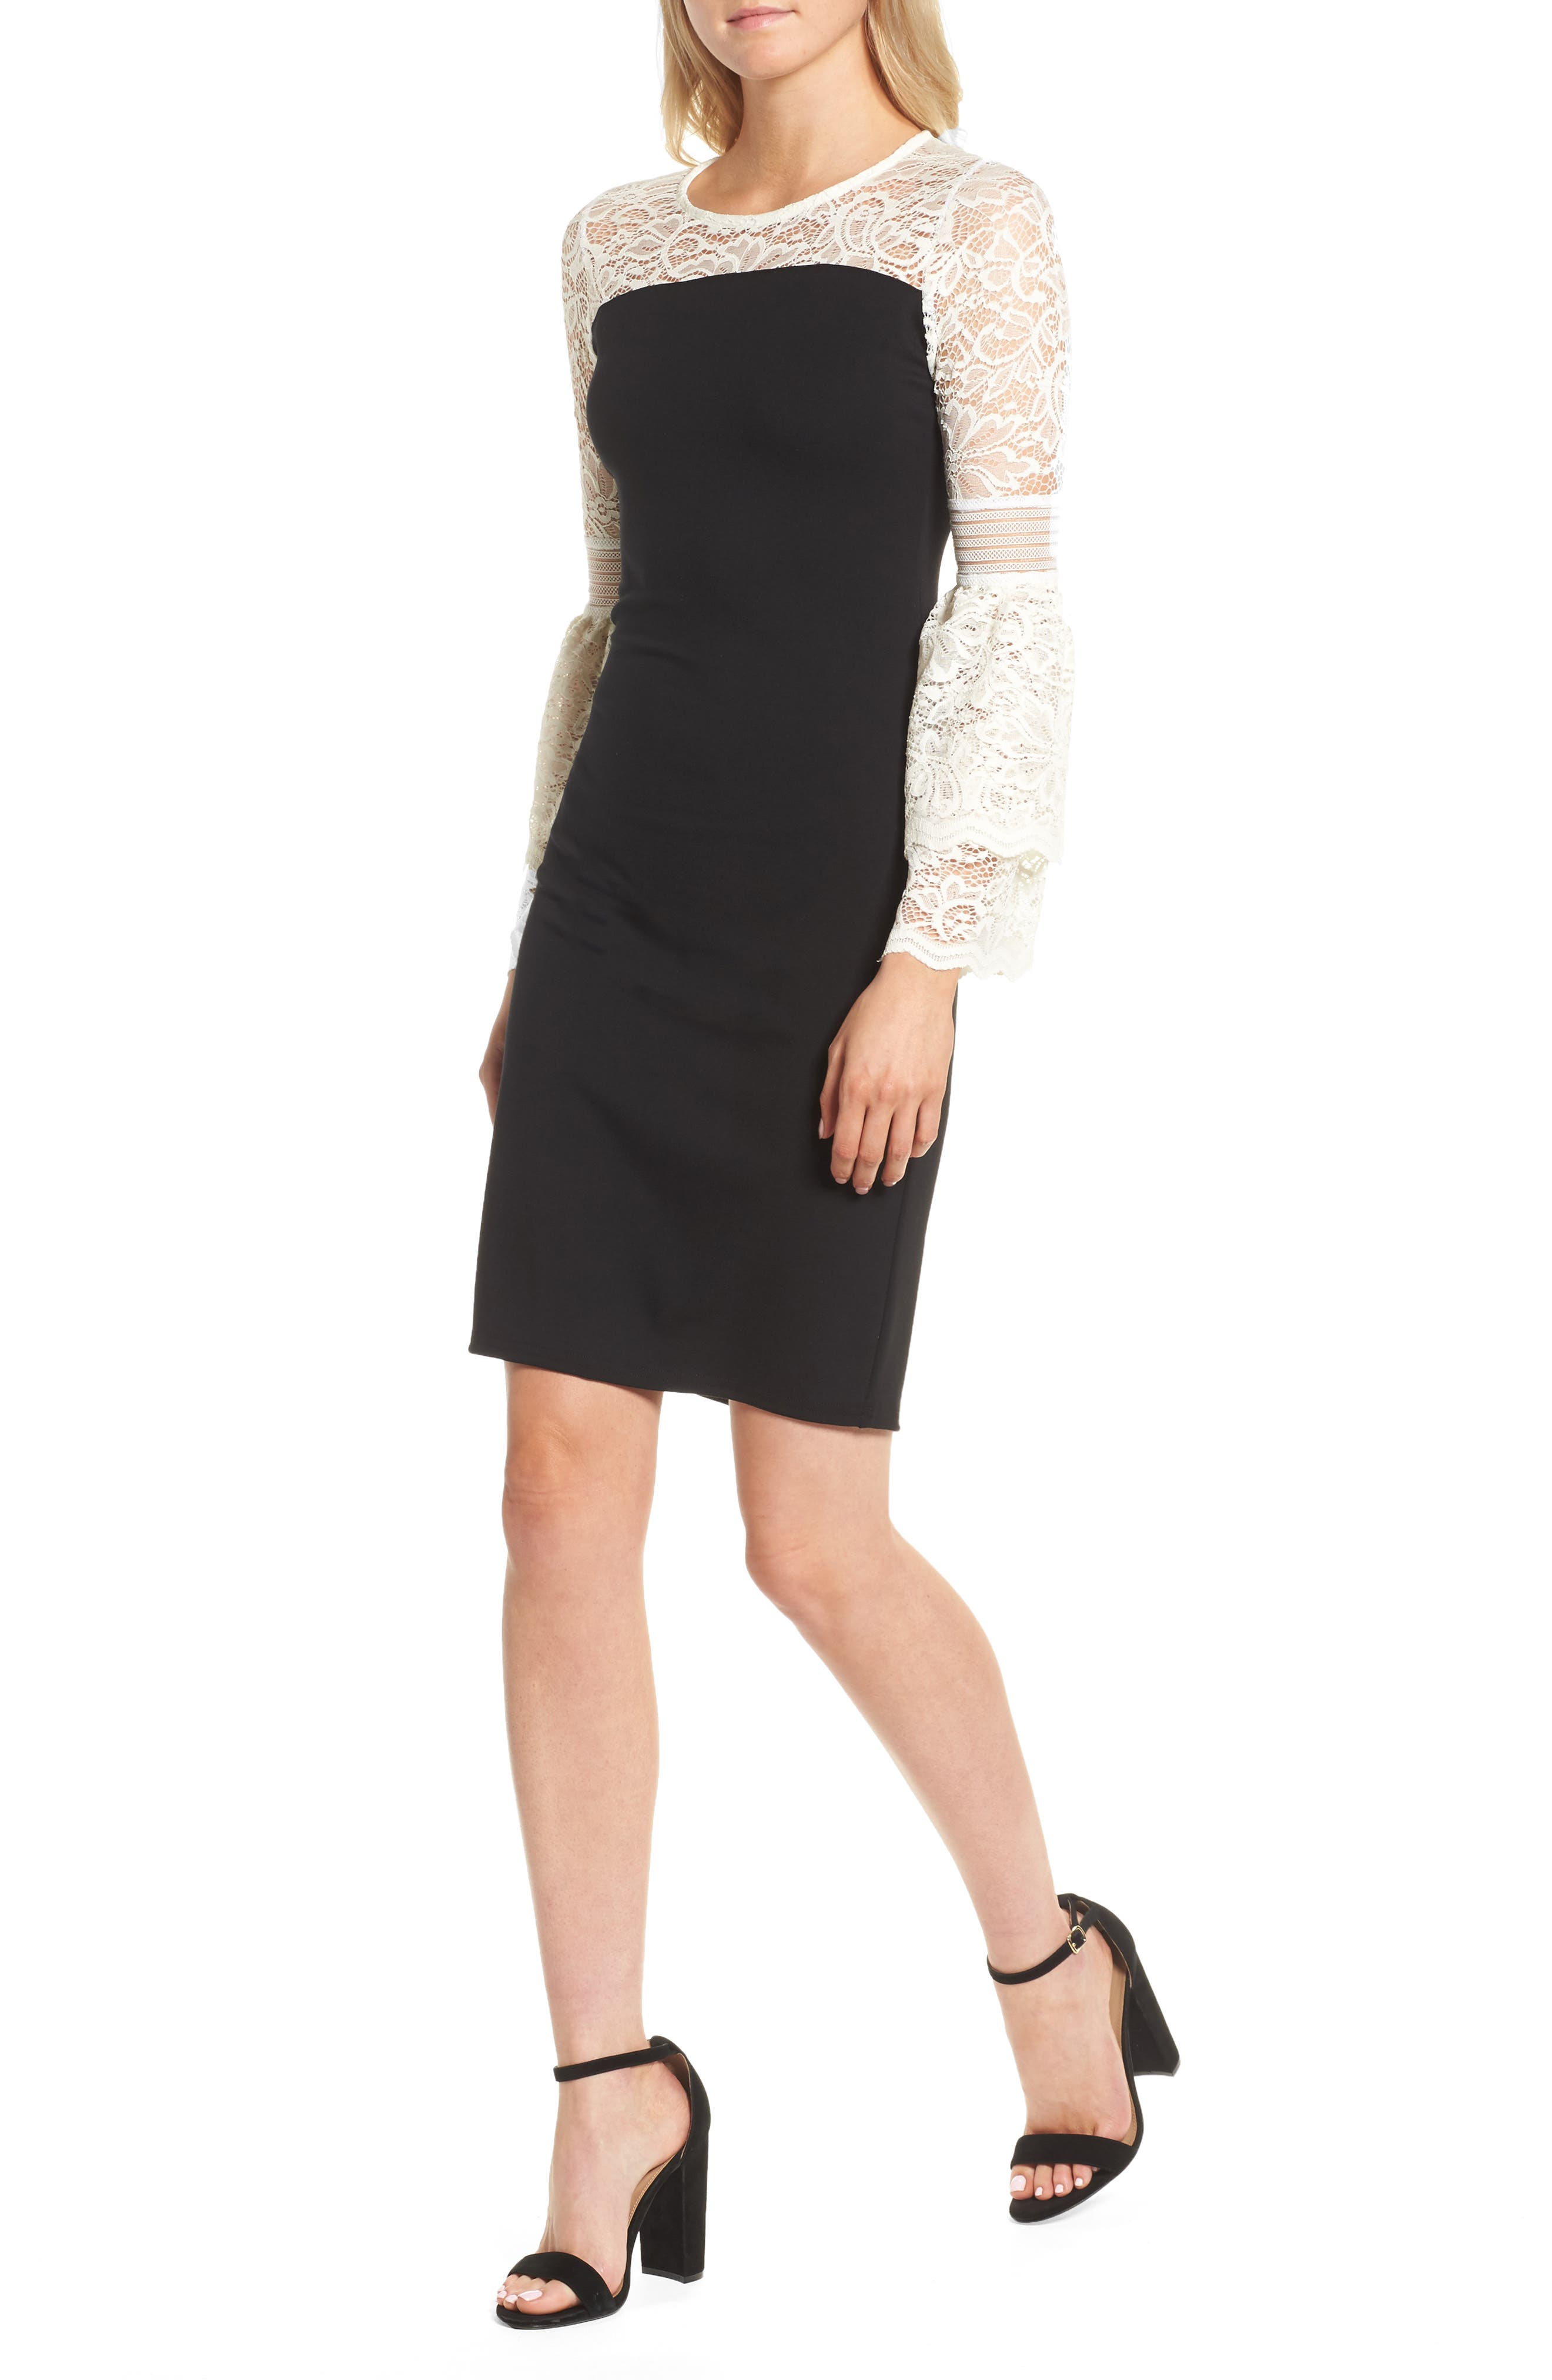 Floetry Bell Sleeve Sheath Dress,                         Main,                         color, Cream Lace/ Black